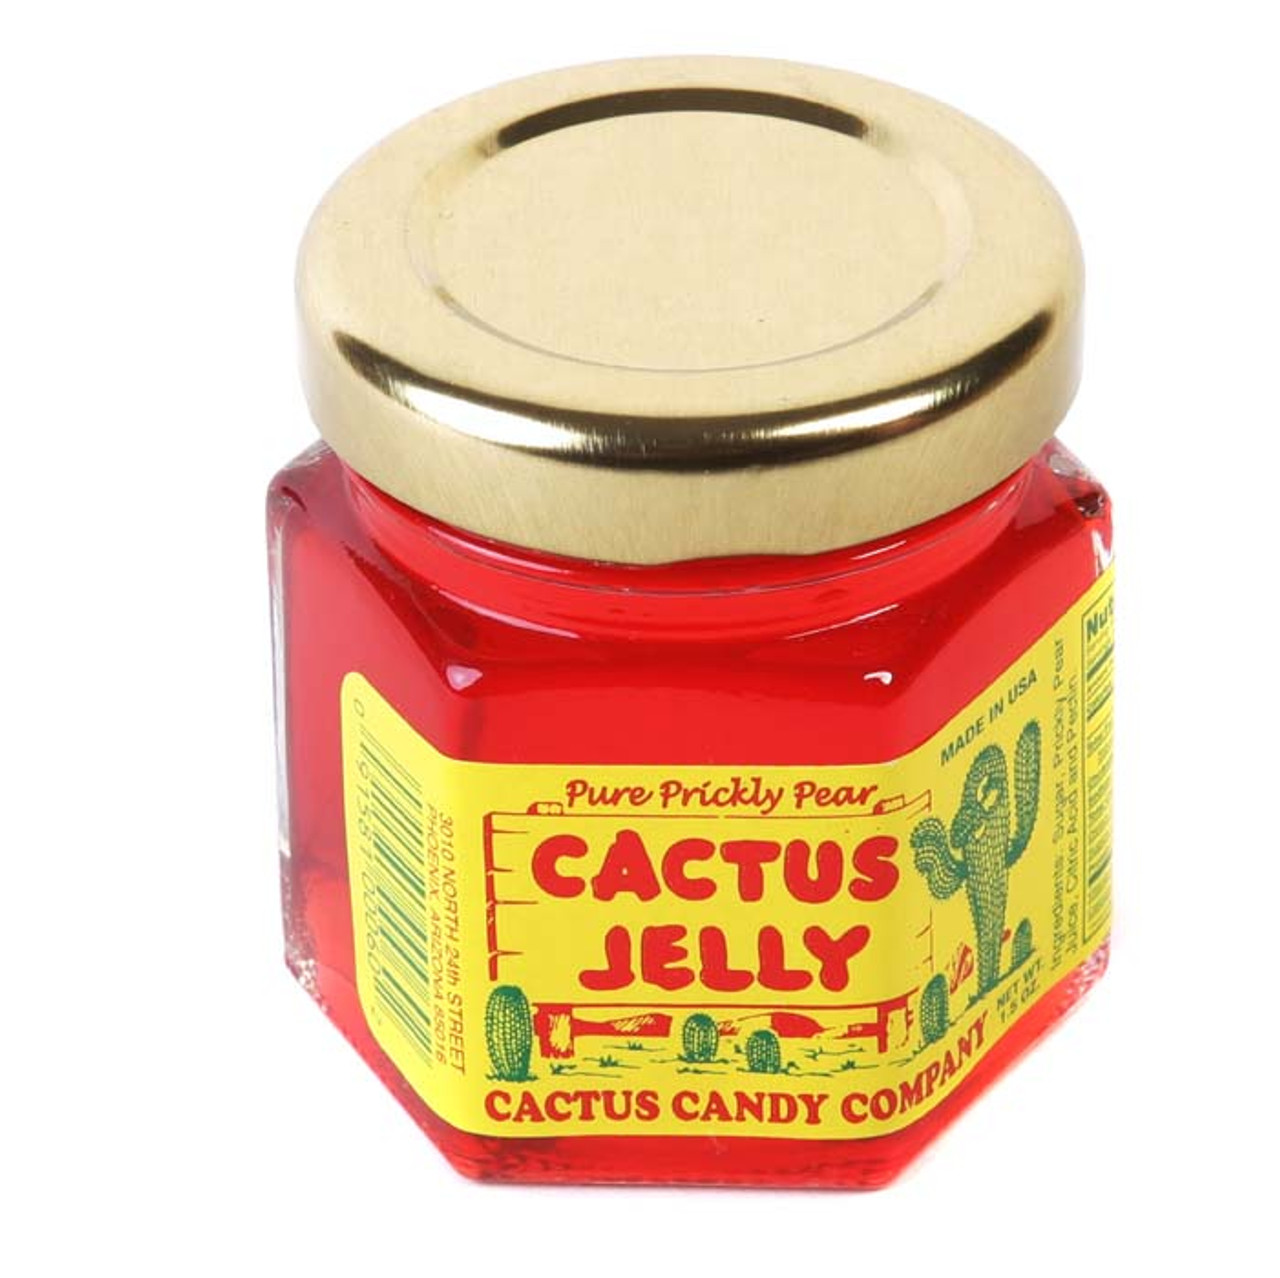 Cactus Jelly 1.5oz-Case of 24